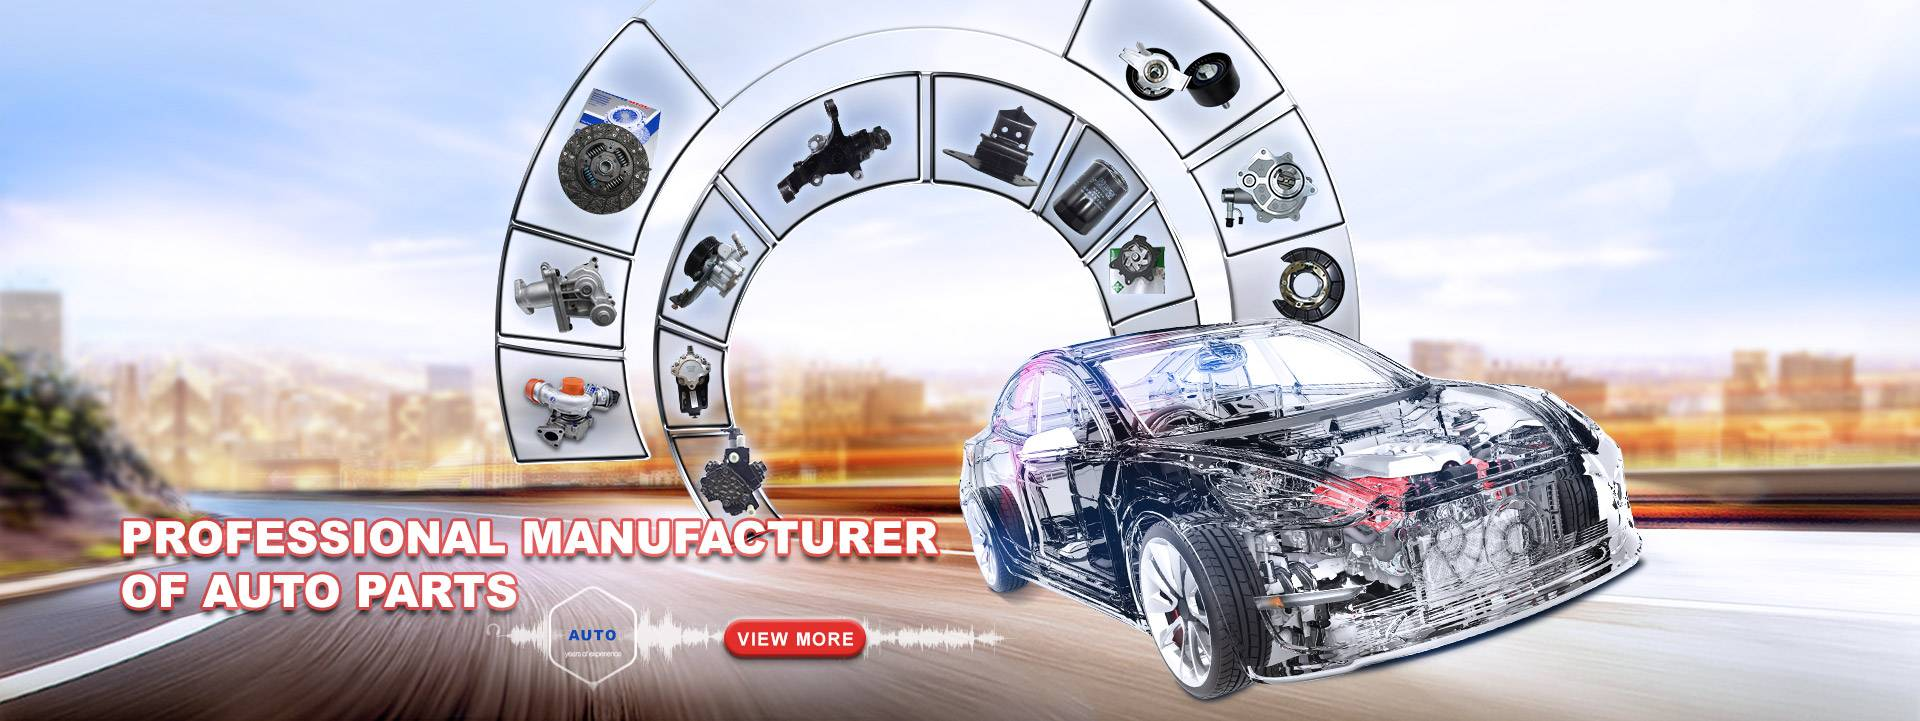 Professional manufacturer of auto parts